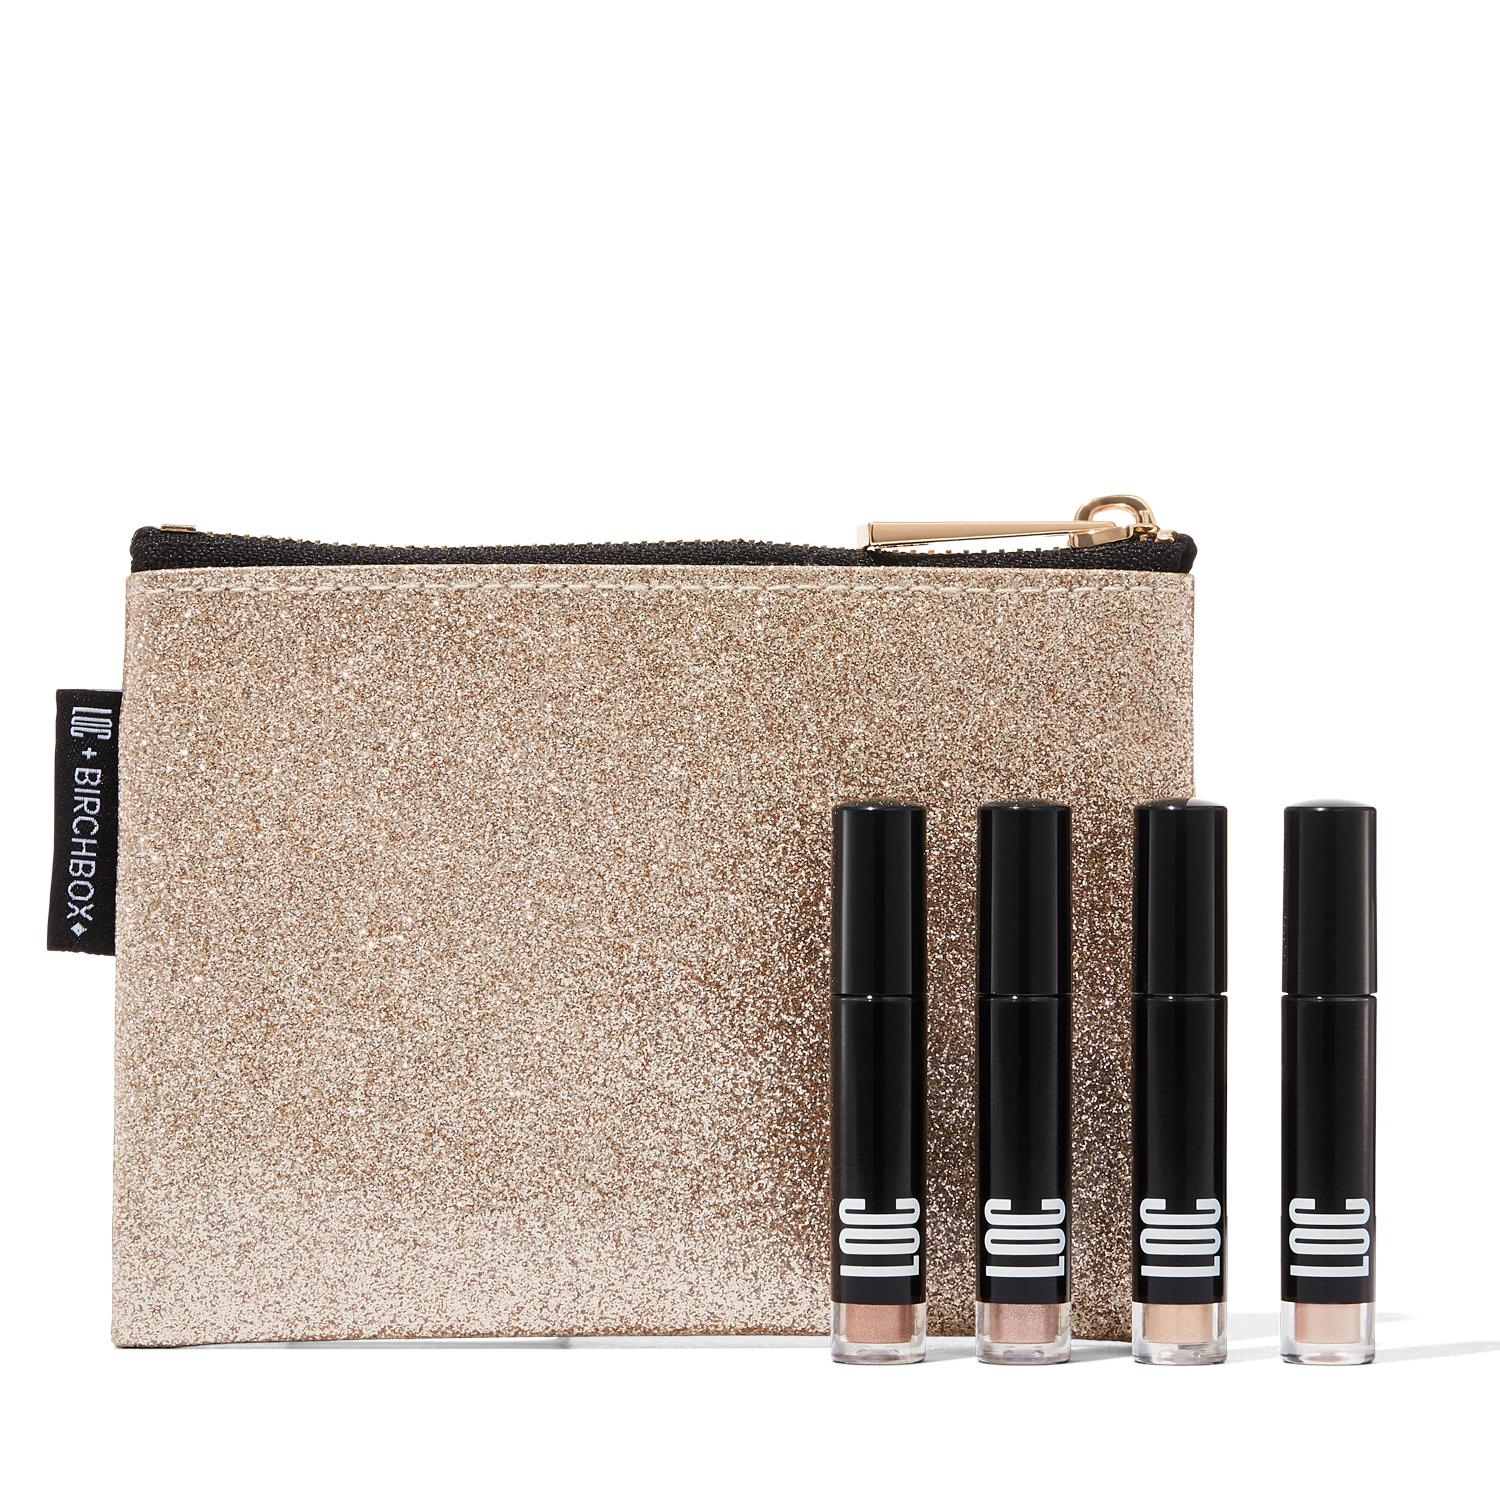 Birchbox Exclusive - Love of Color Liquid Shimmer Shadow Set // Price: $25 // (Image: Birchbox)<p></p>